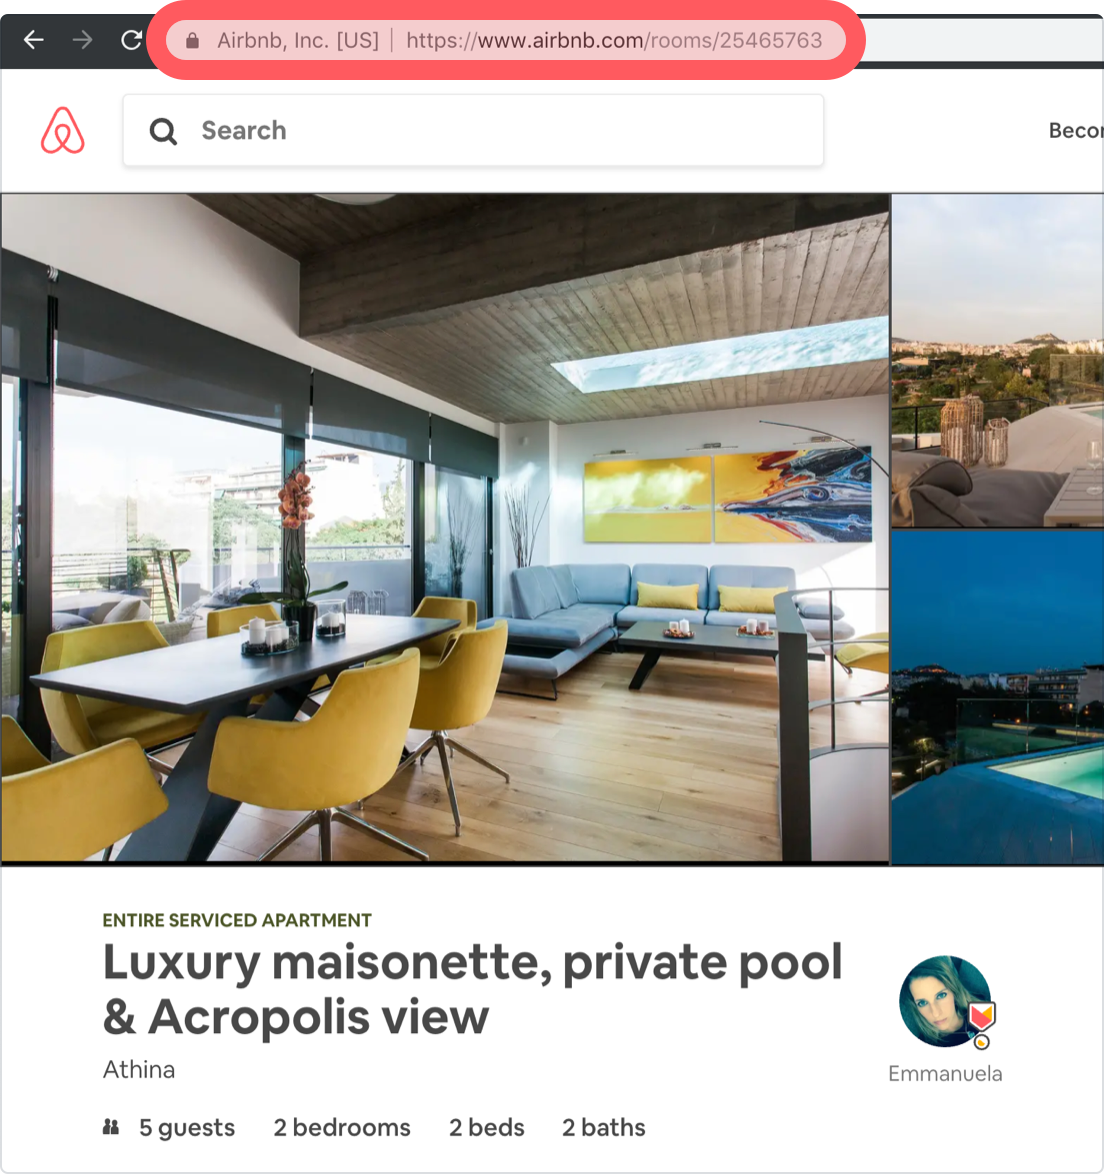 Get insights in 3 easy steps - STEP 1Enter the Airbnb listing URL for each of your properties.STEP 2Choose up to 5 competitive properties that your listings most often compete with for bookings.STEP 3Receive real-time pricing comparisons and insights on new bookings, occupancy rates, and bookings revenue.